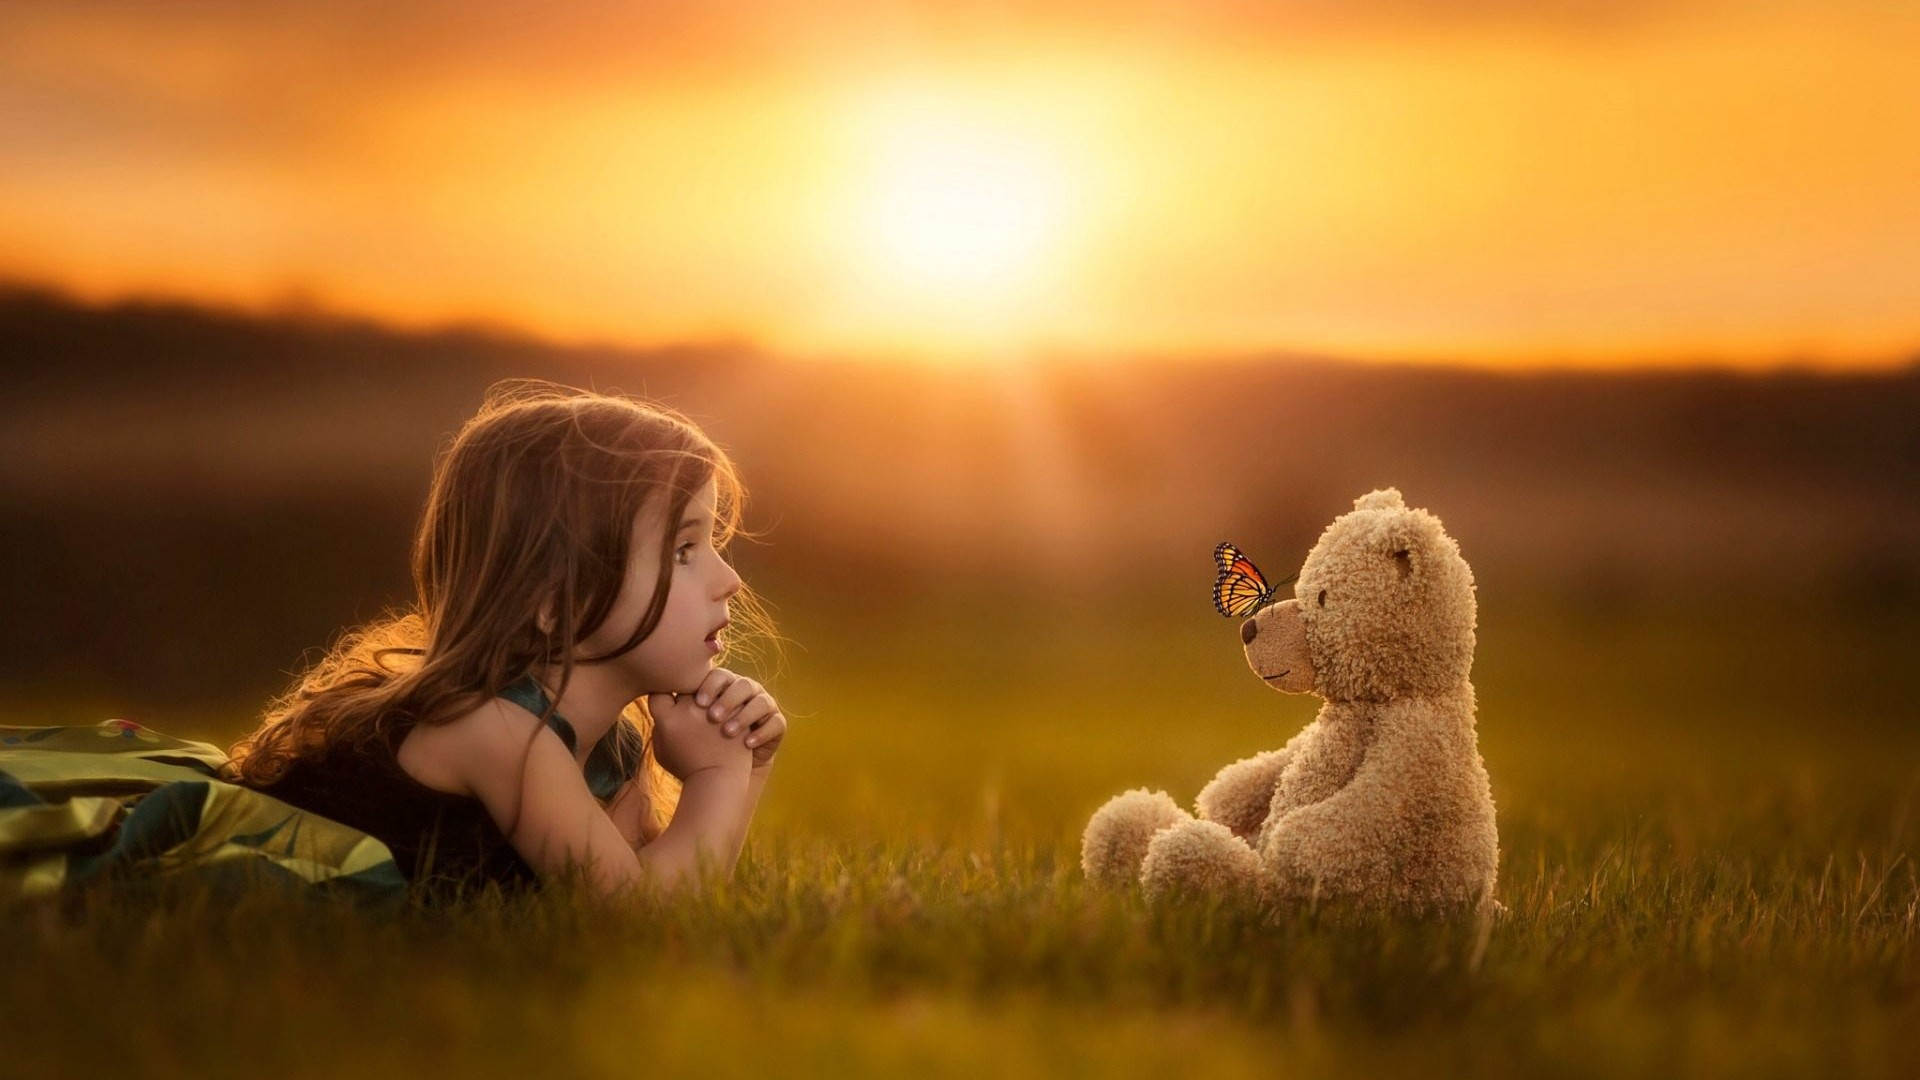 Cute-Girl-With-Teddy-Bear-Cute-1920x1080-Need-iPhone-S-Plus-Background-wallpaper-wp3804241